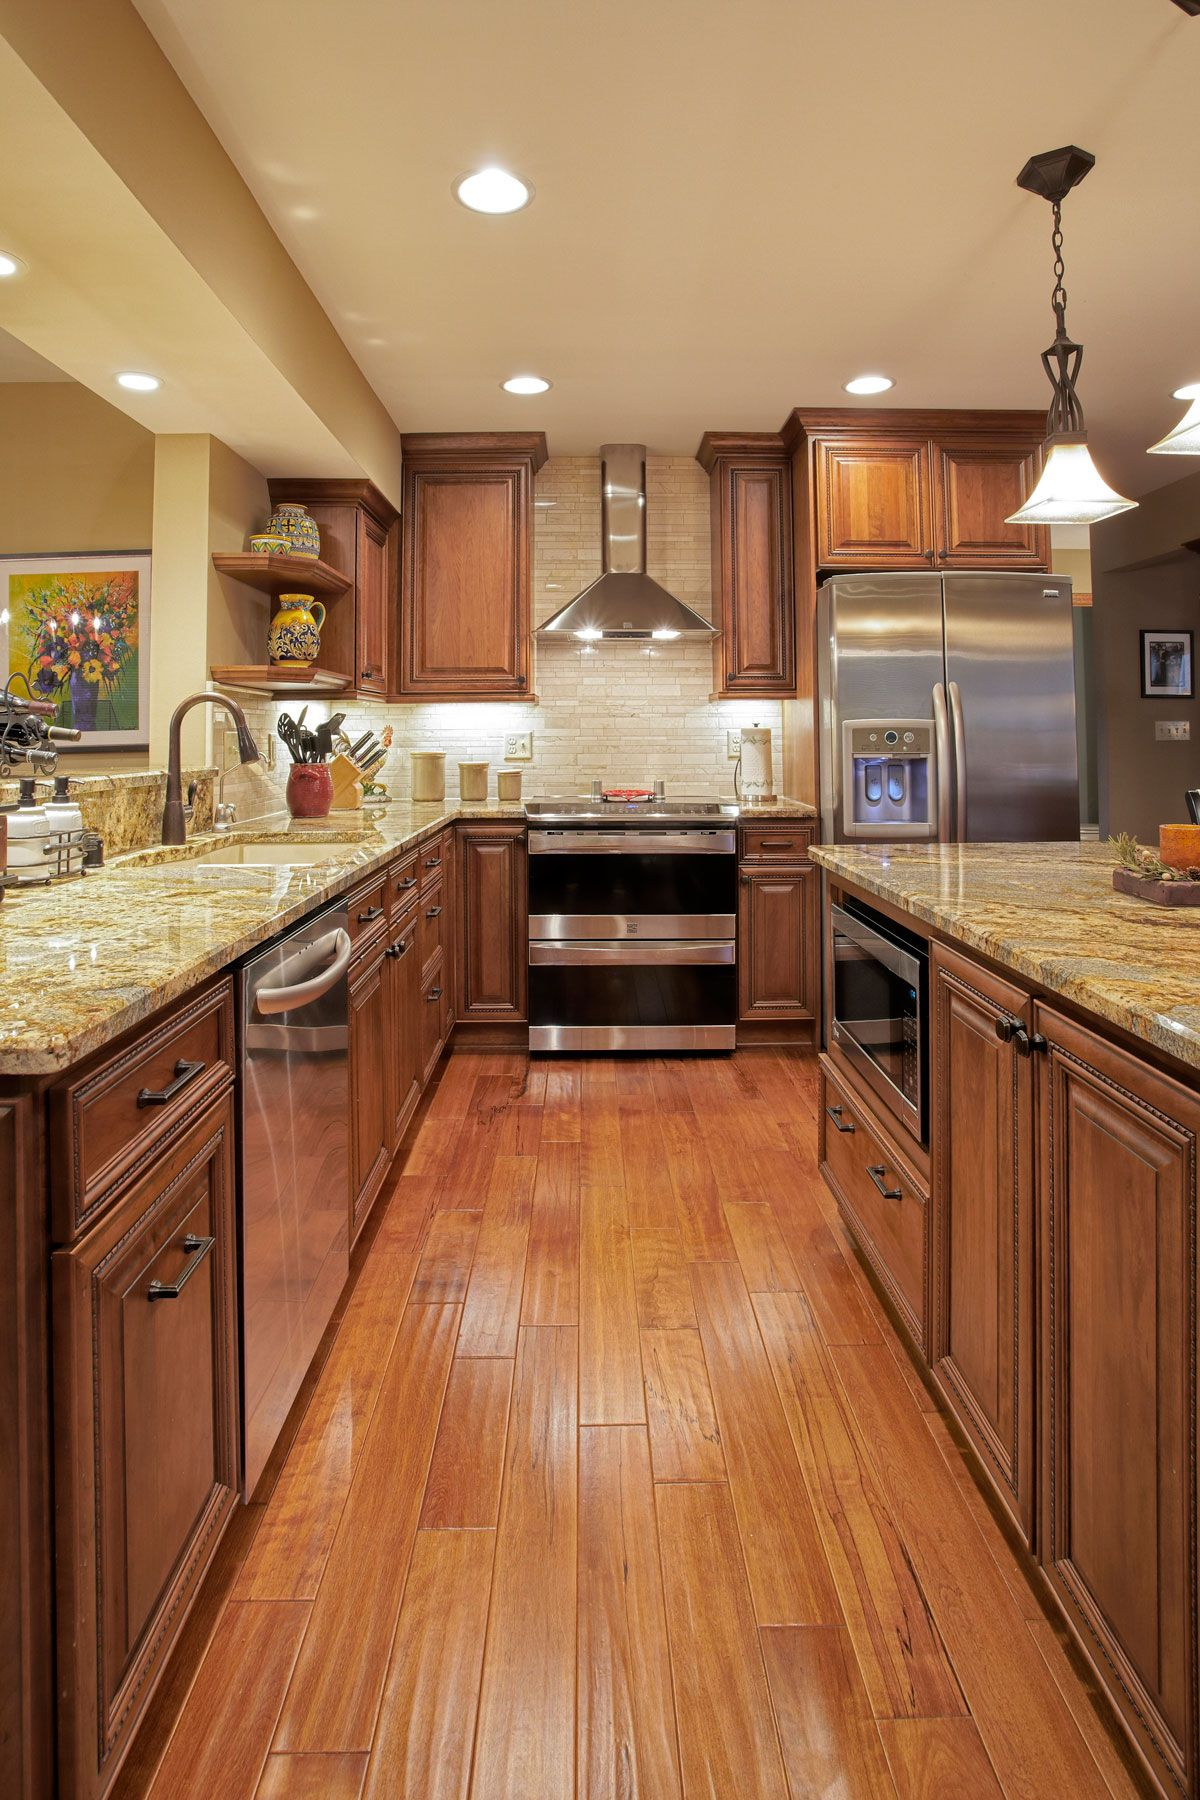 small kitchen design with cherry wood cabinets | kitchen | pinterest